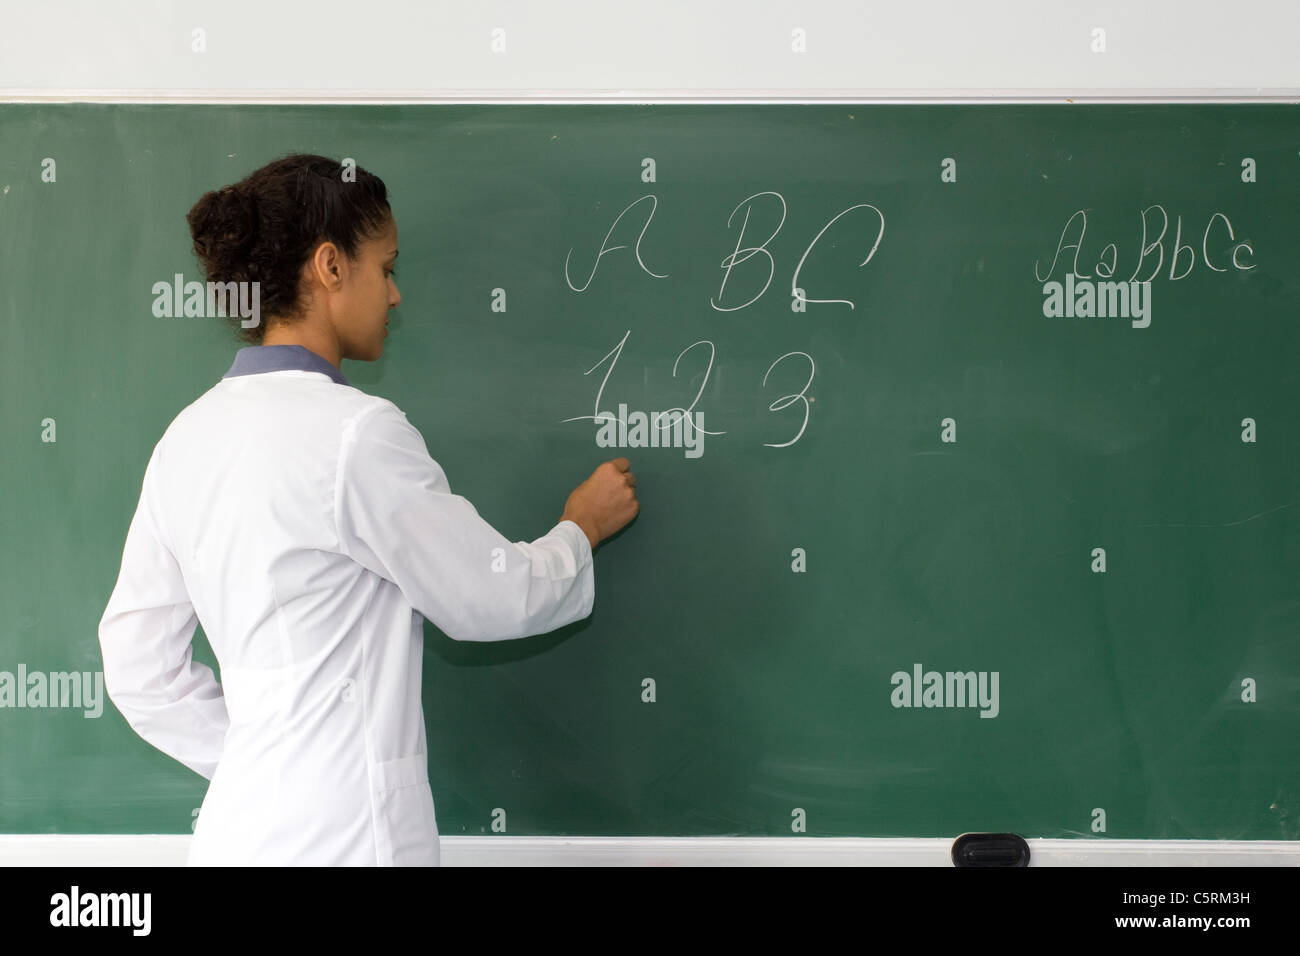 adult teacher is standing near chalkboard and writing - Stock Image